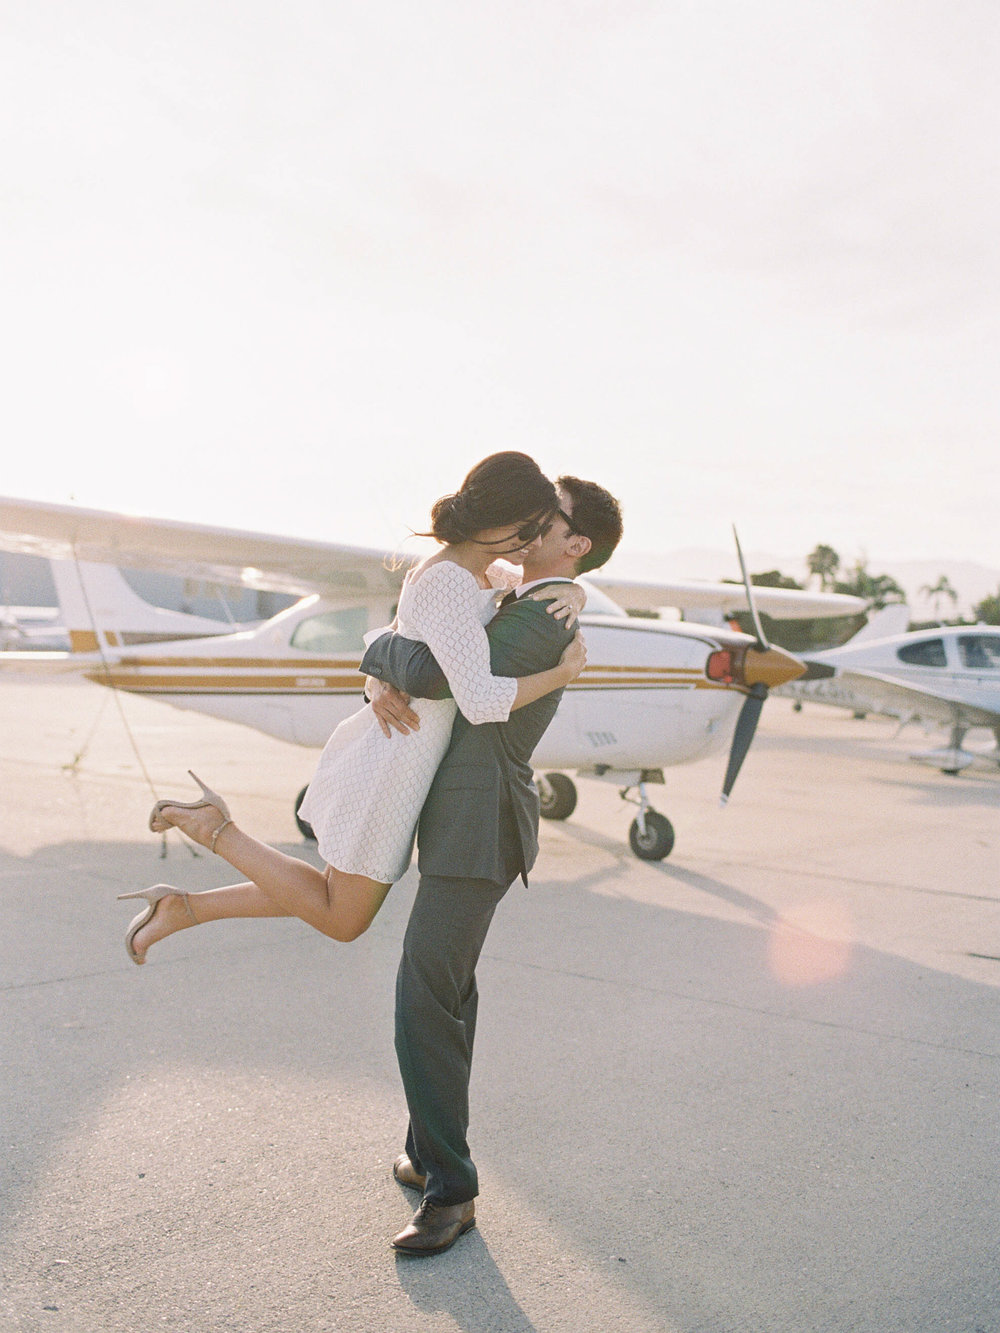 airport-engagement-shoot-10.jpg